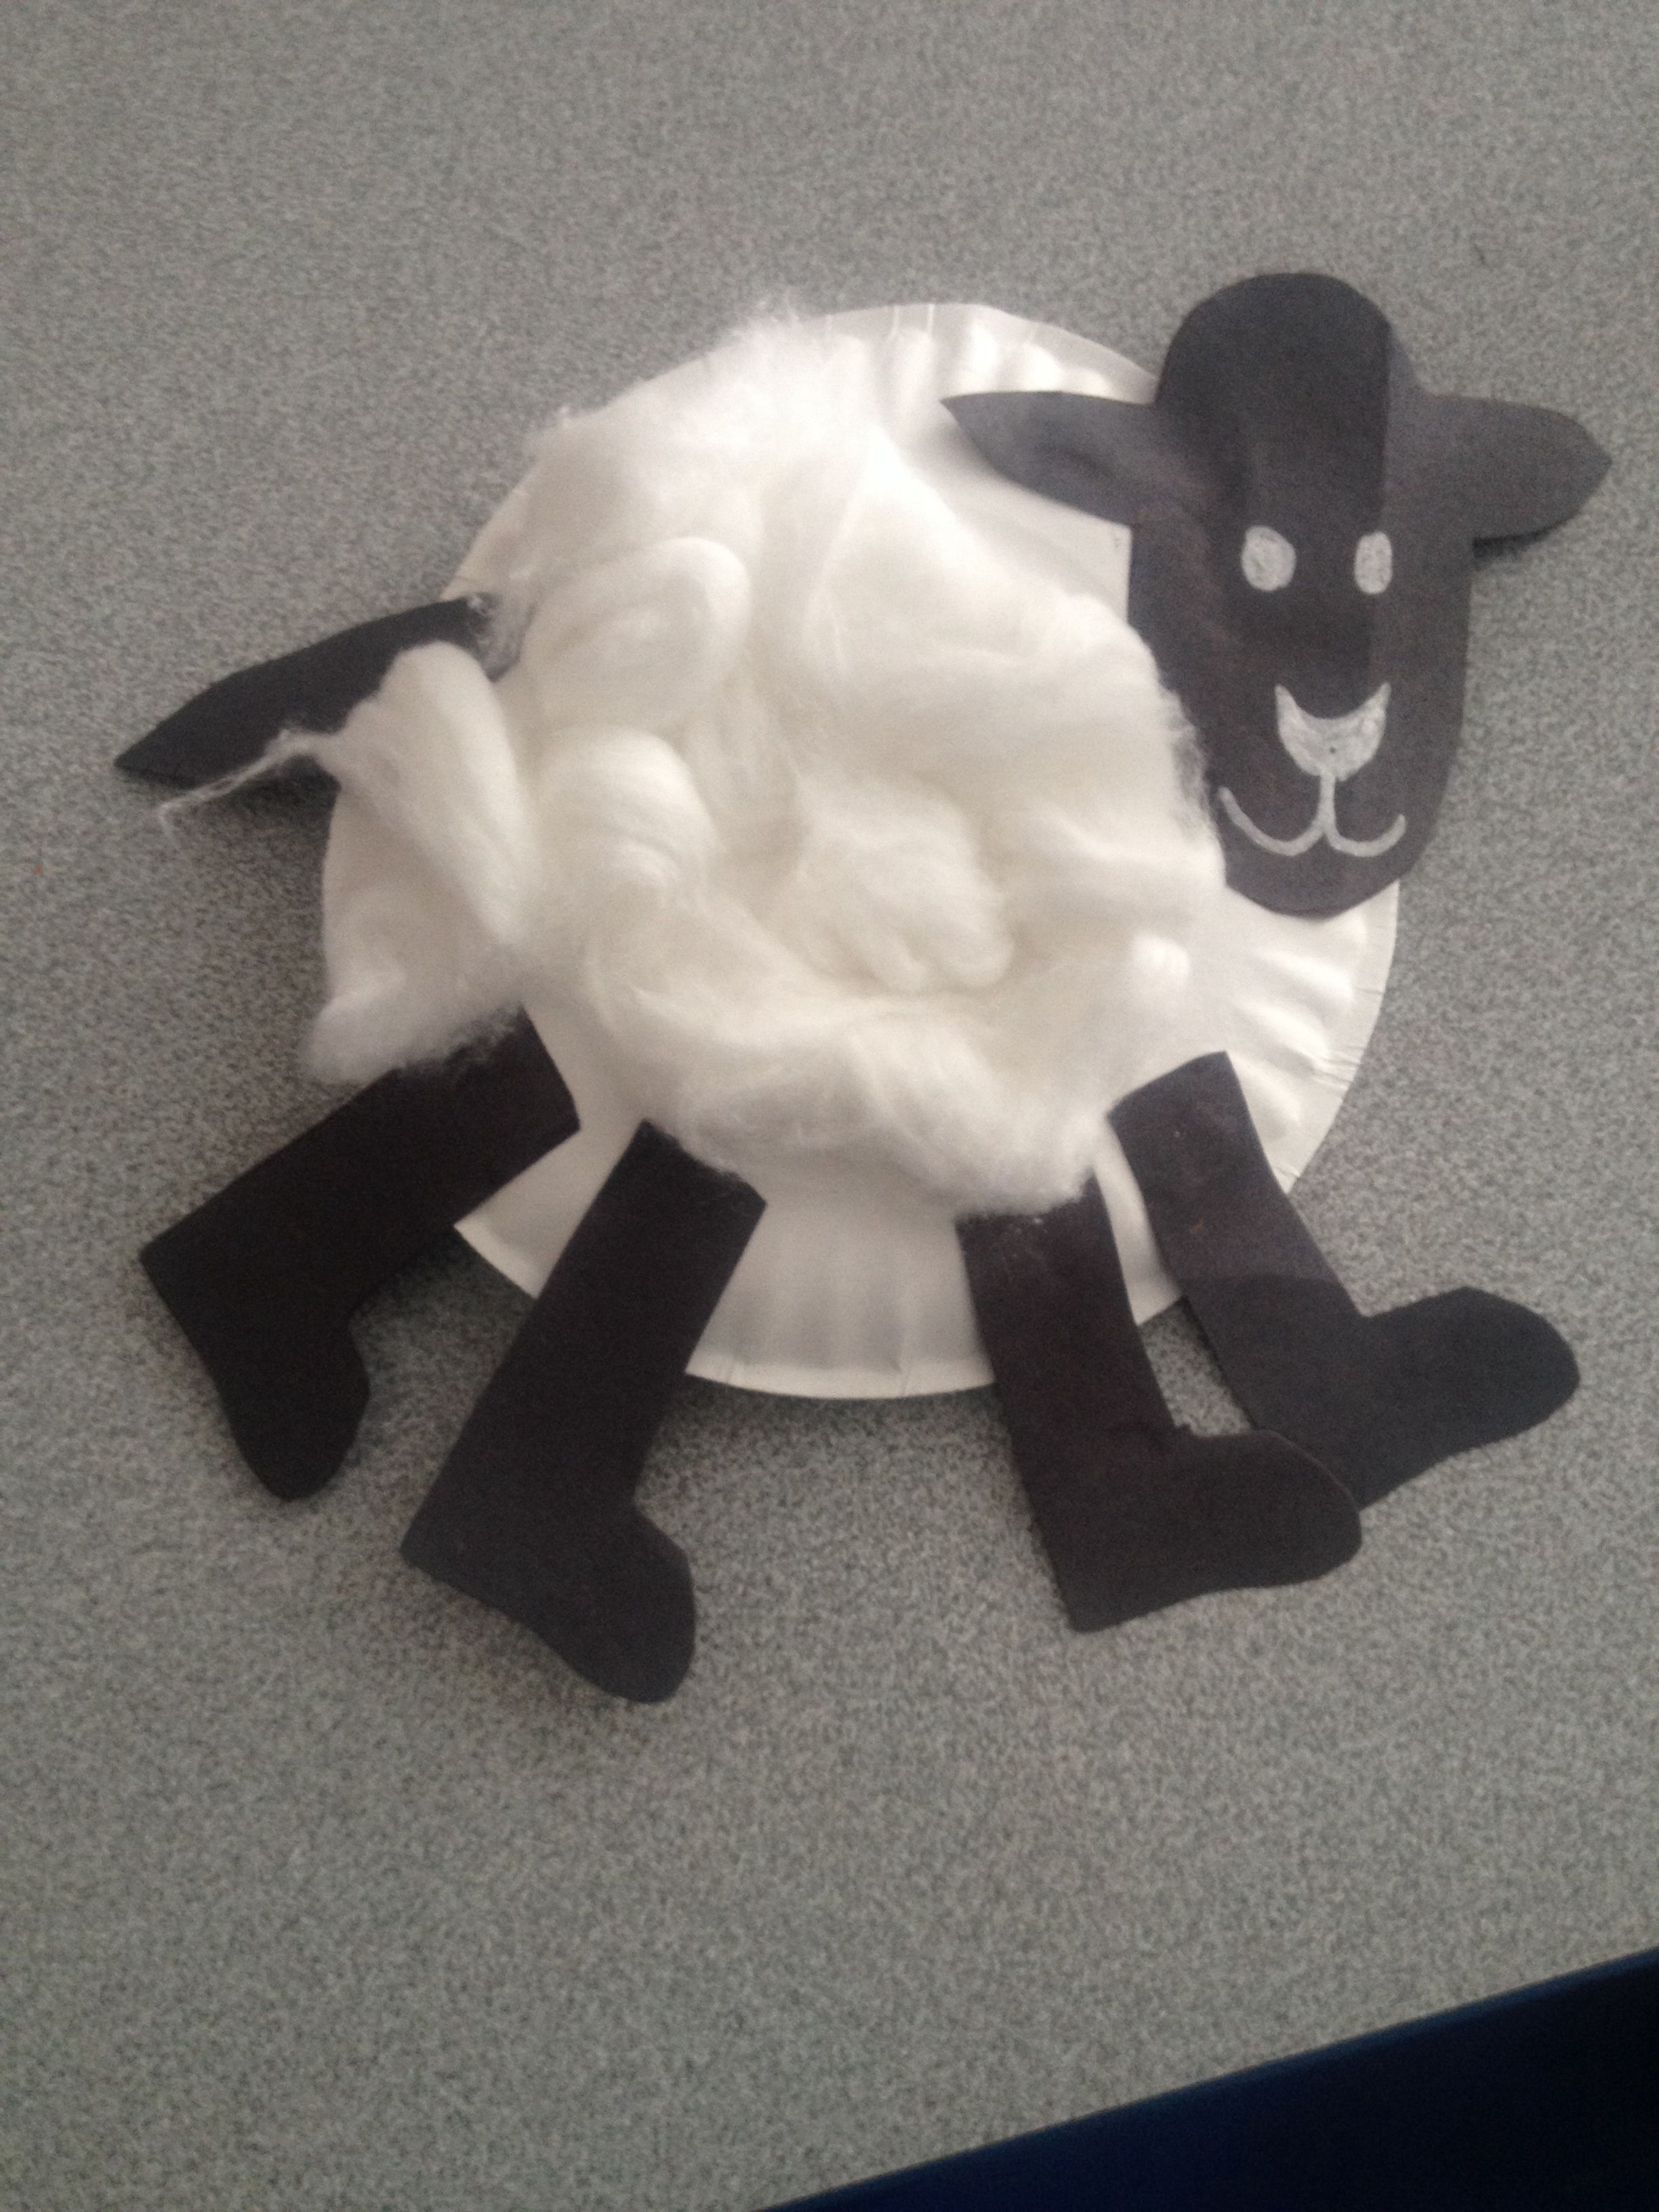 In like a lamb: March craft